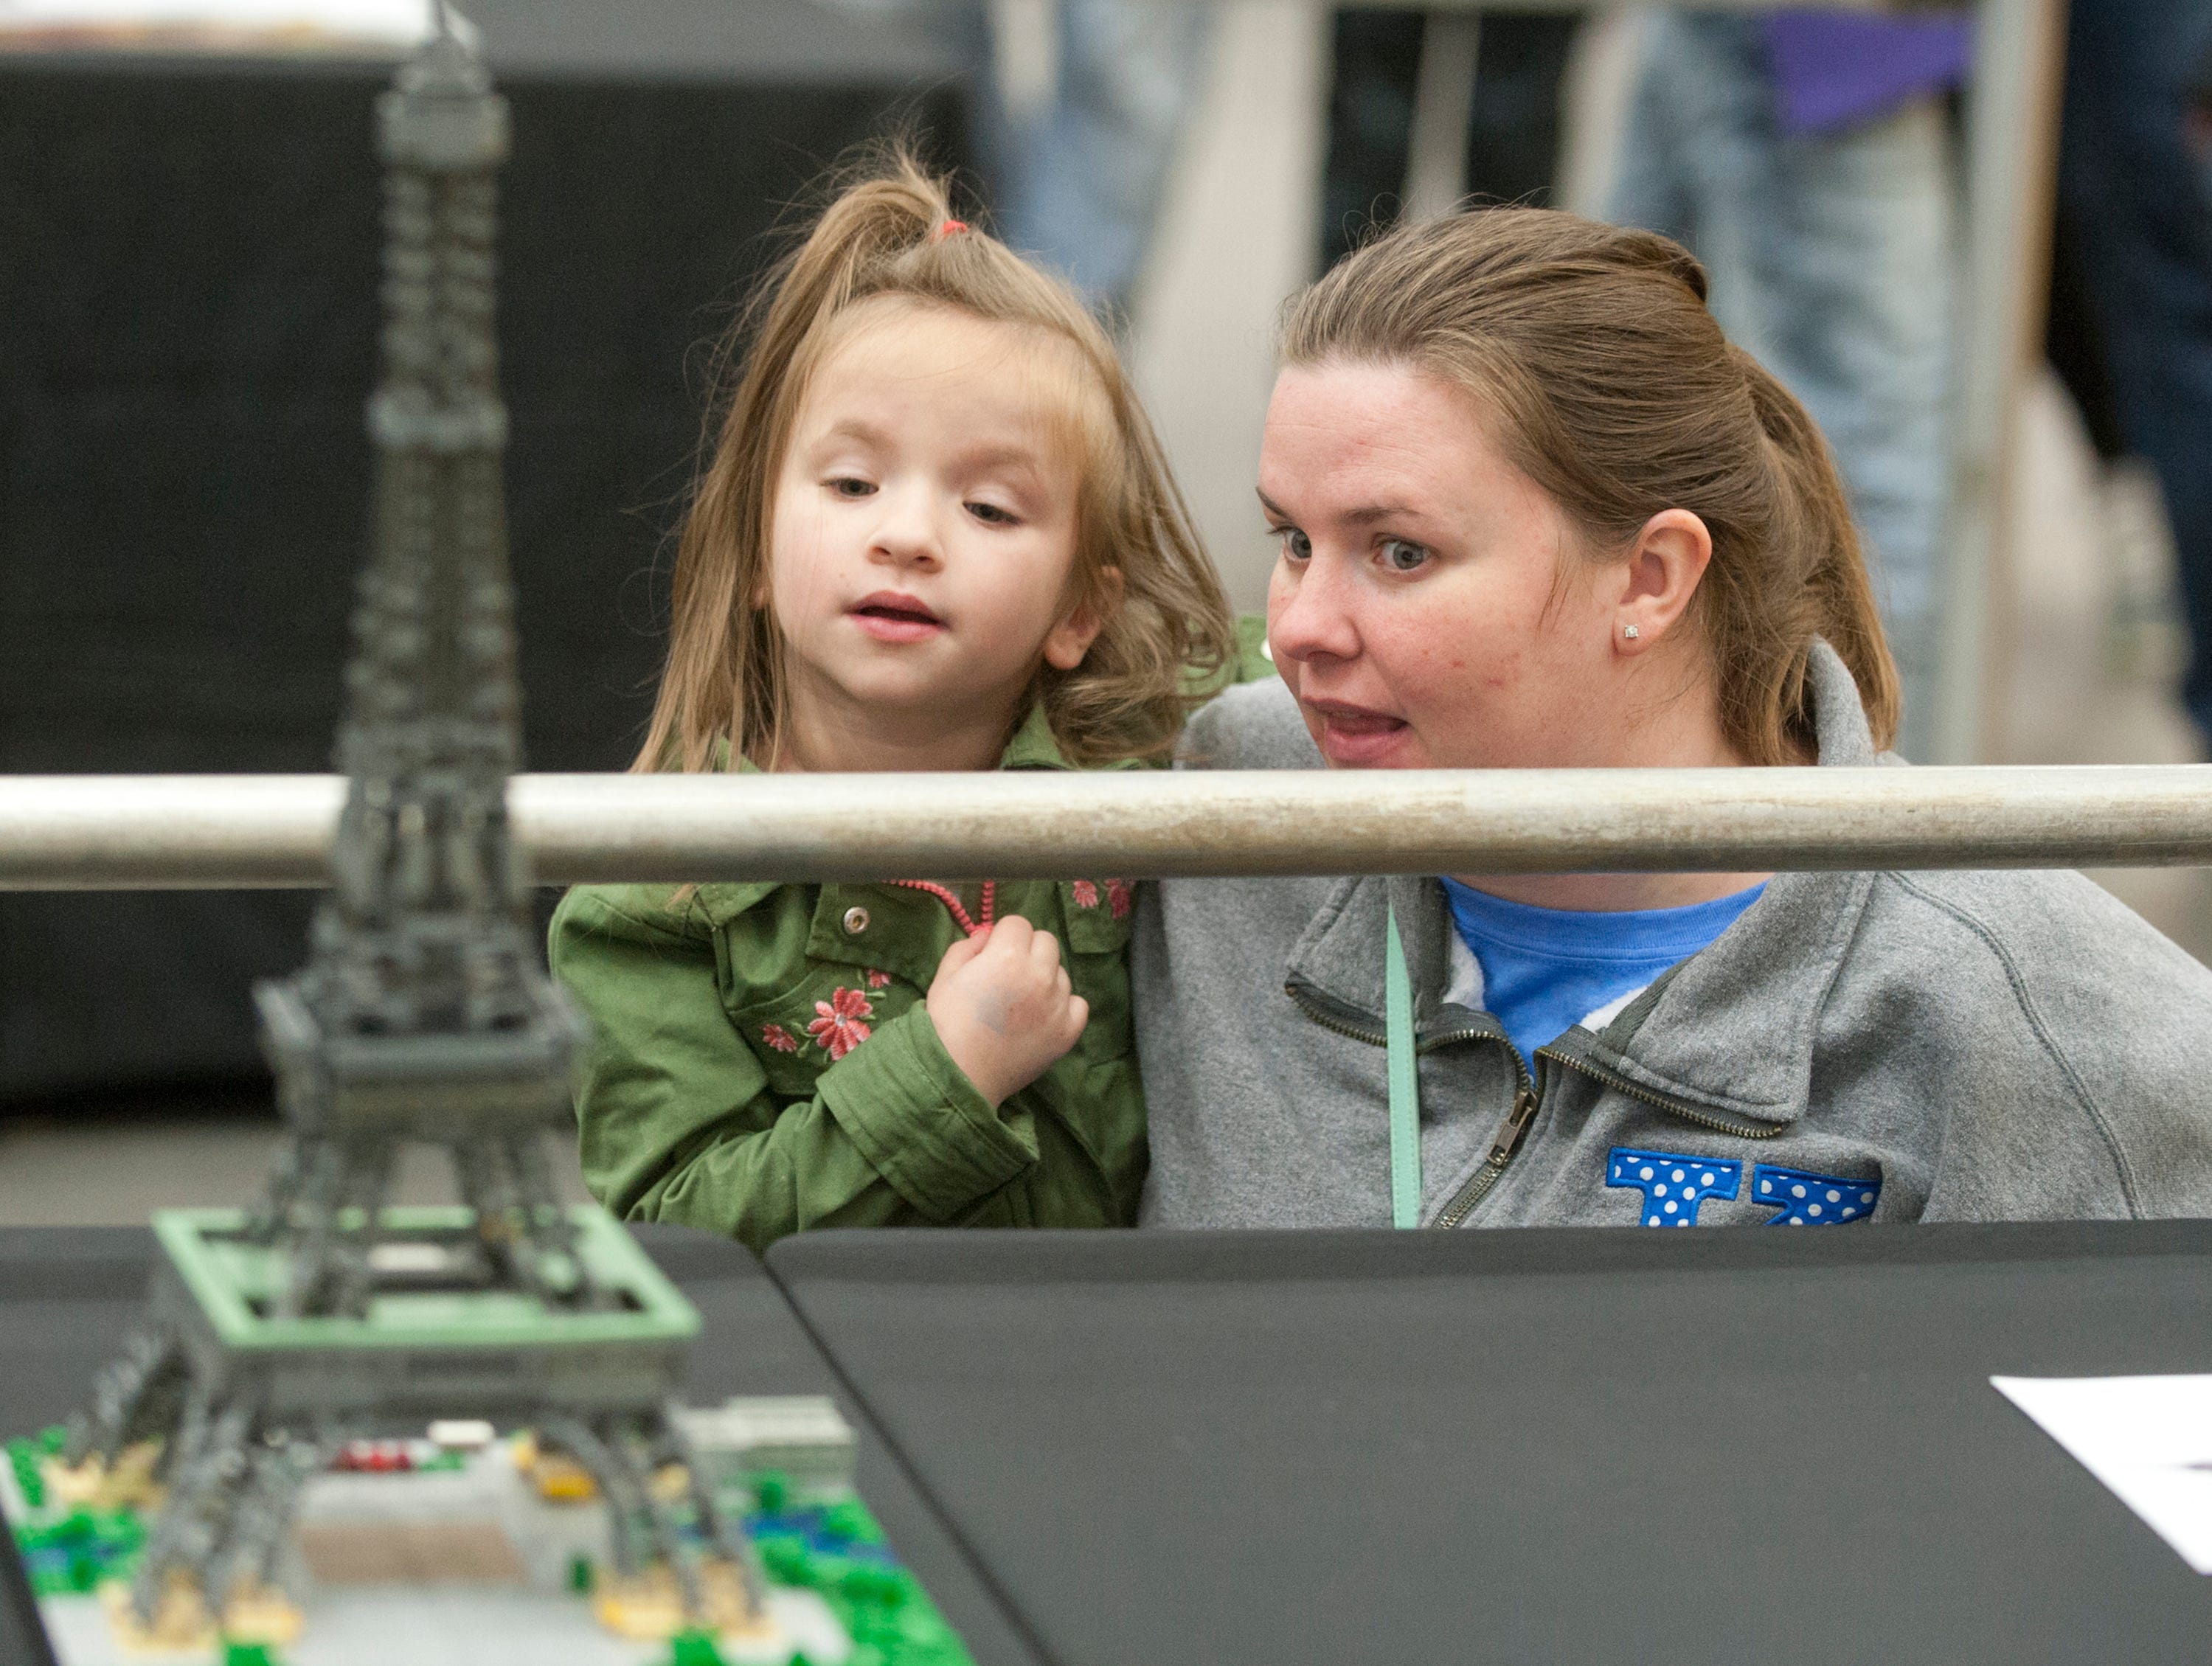 Looking at a Lego version of the Eiffel Tower i Sadie Ballard, age 5, and her mother, Randi of St. Matthews, Ky.  The exhibit was part of the BrickUniverse Lego Fan Convention at the Kentucky International Convention Center in downtown Louisville.19 January 2019